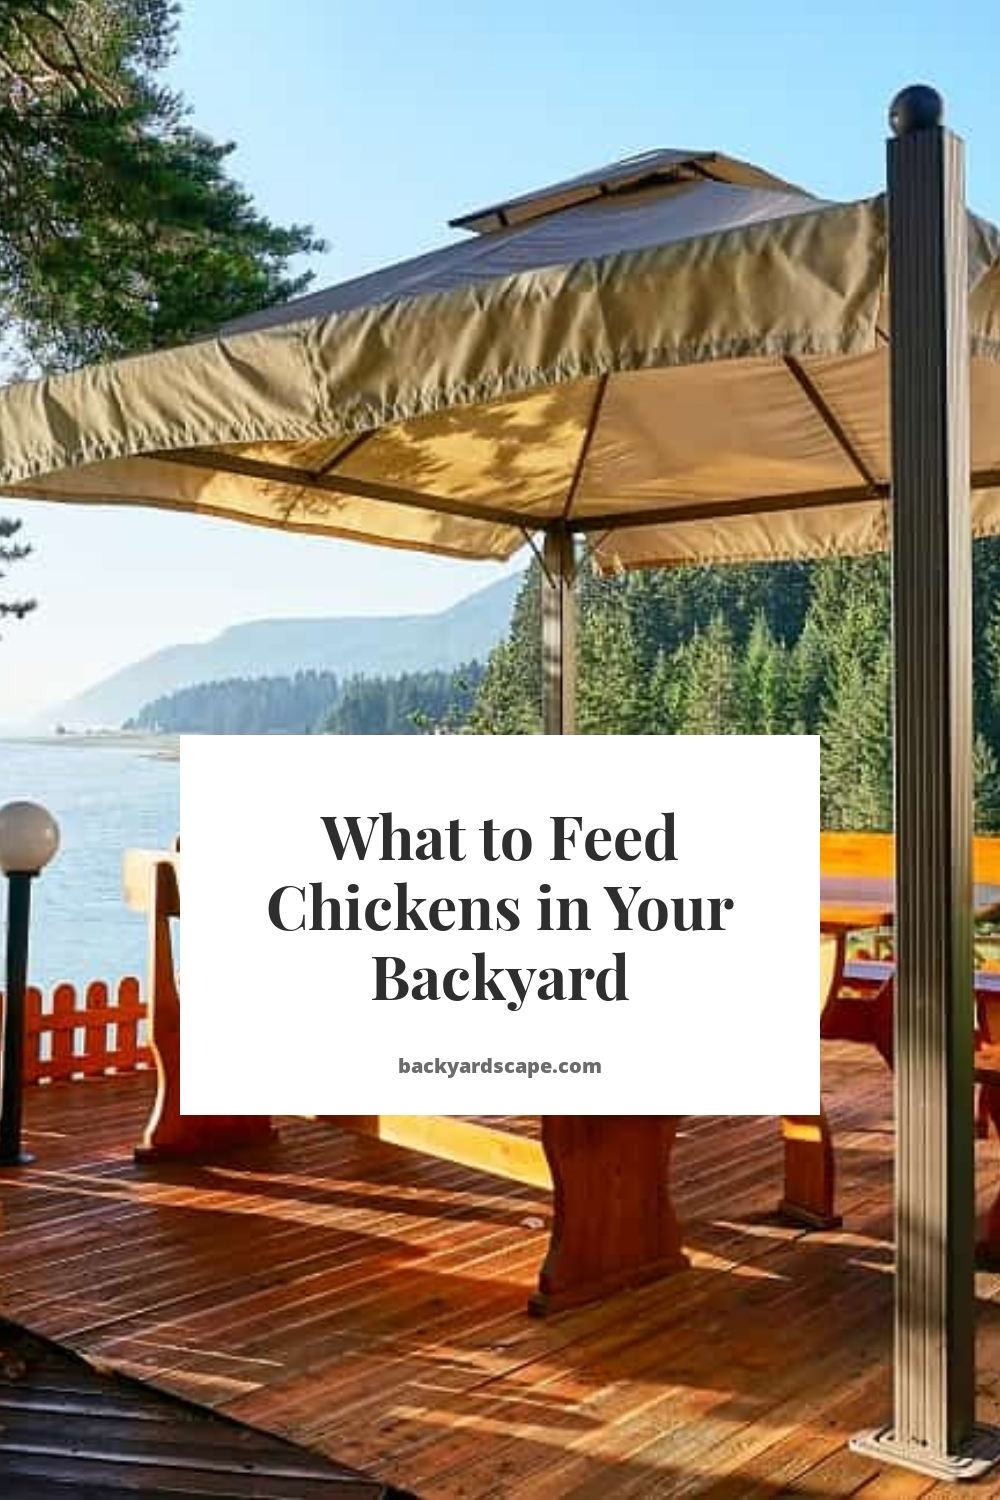 What to Feed Chickens in Your Backyard